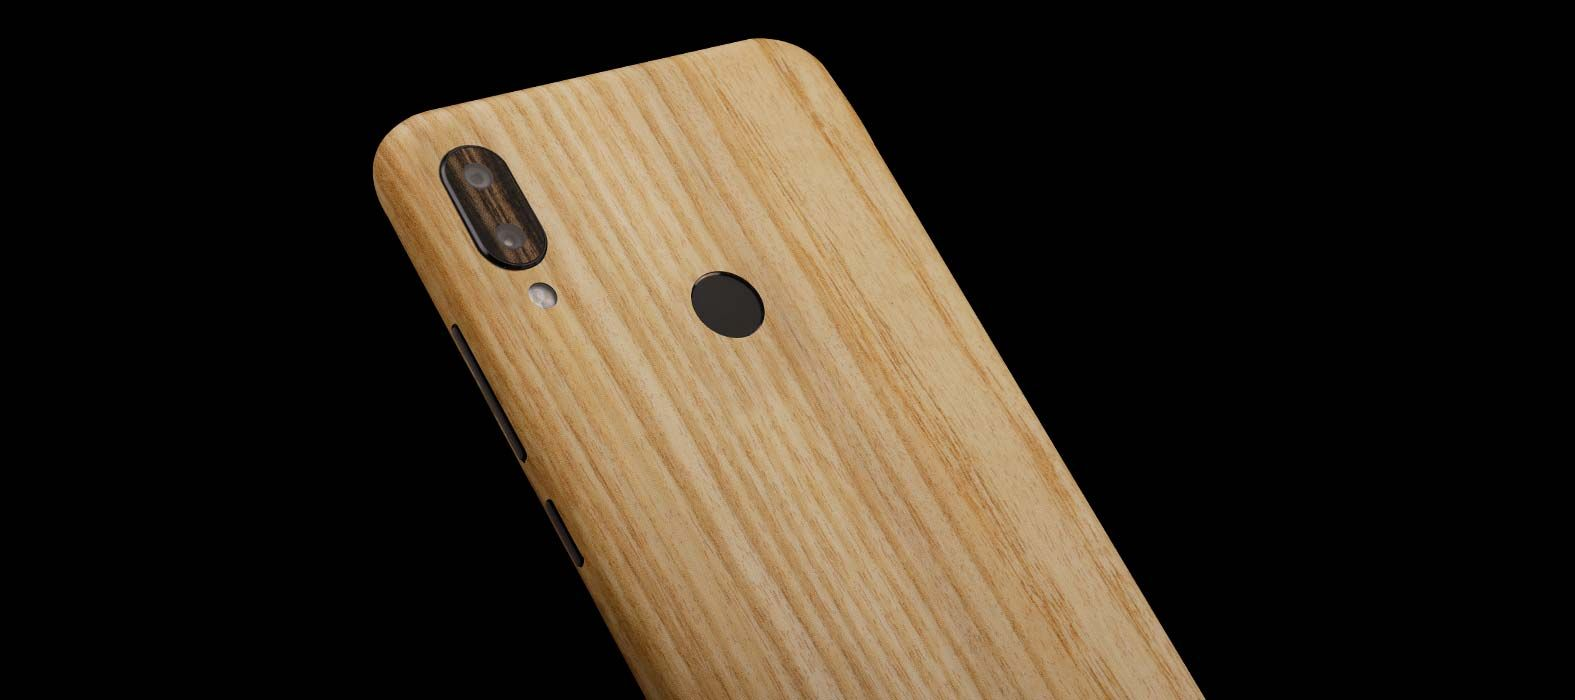 Redmi-note-7-pro_Bamboo-Wood_Skins